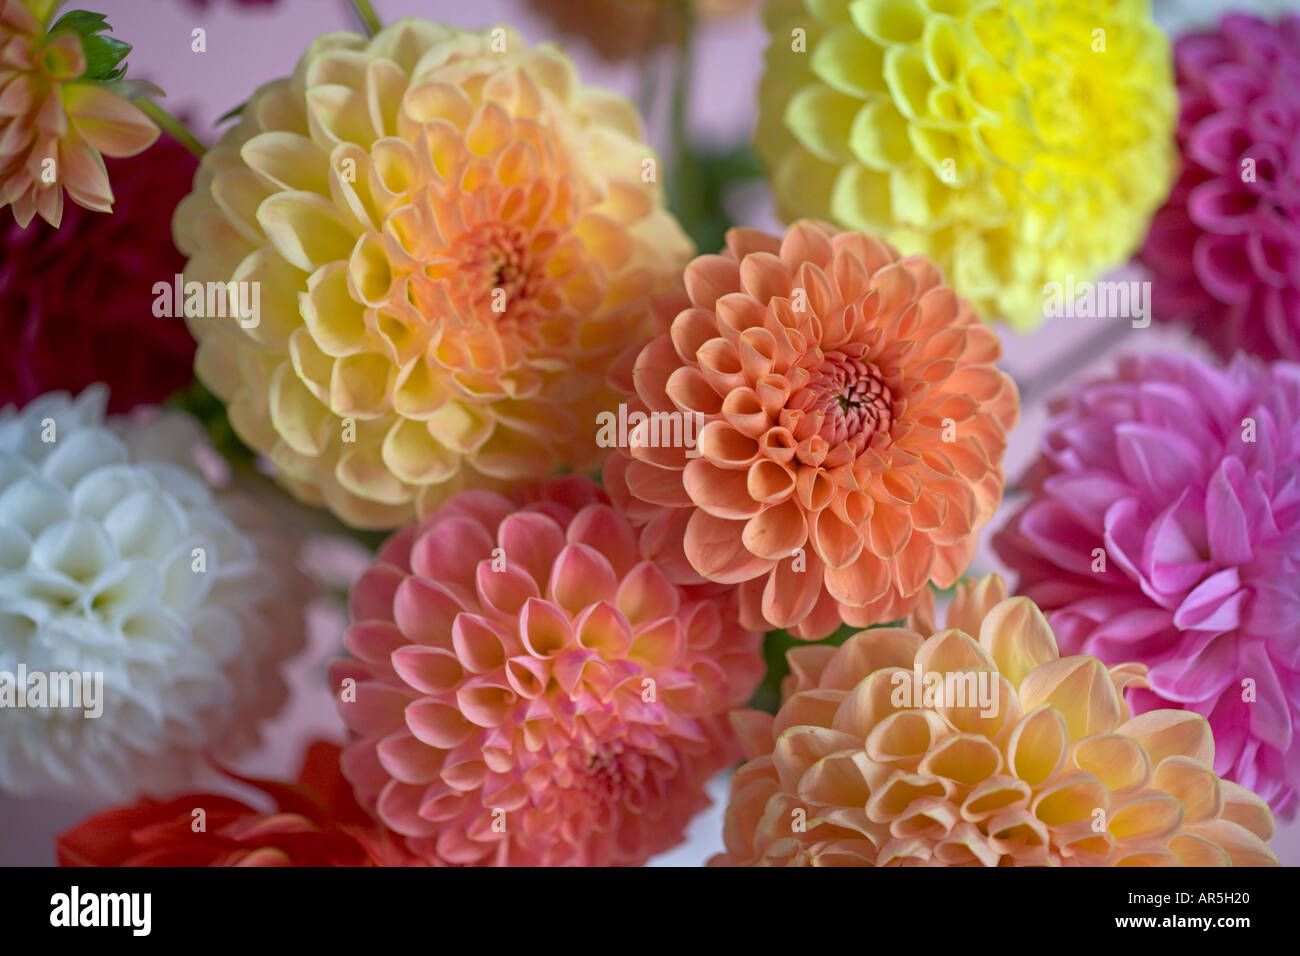 Dahlia flower arrangement stock photo 5205279 alamy dahlia flower arrangement izmirmasajfo